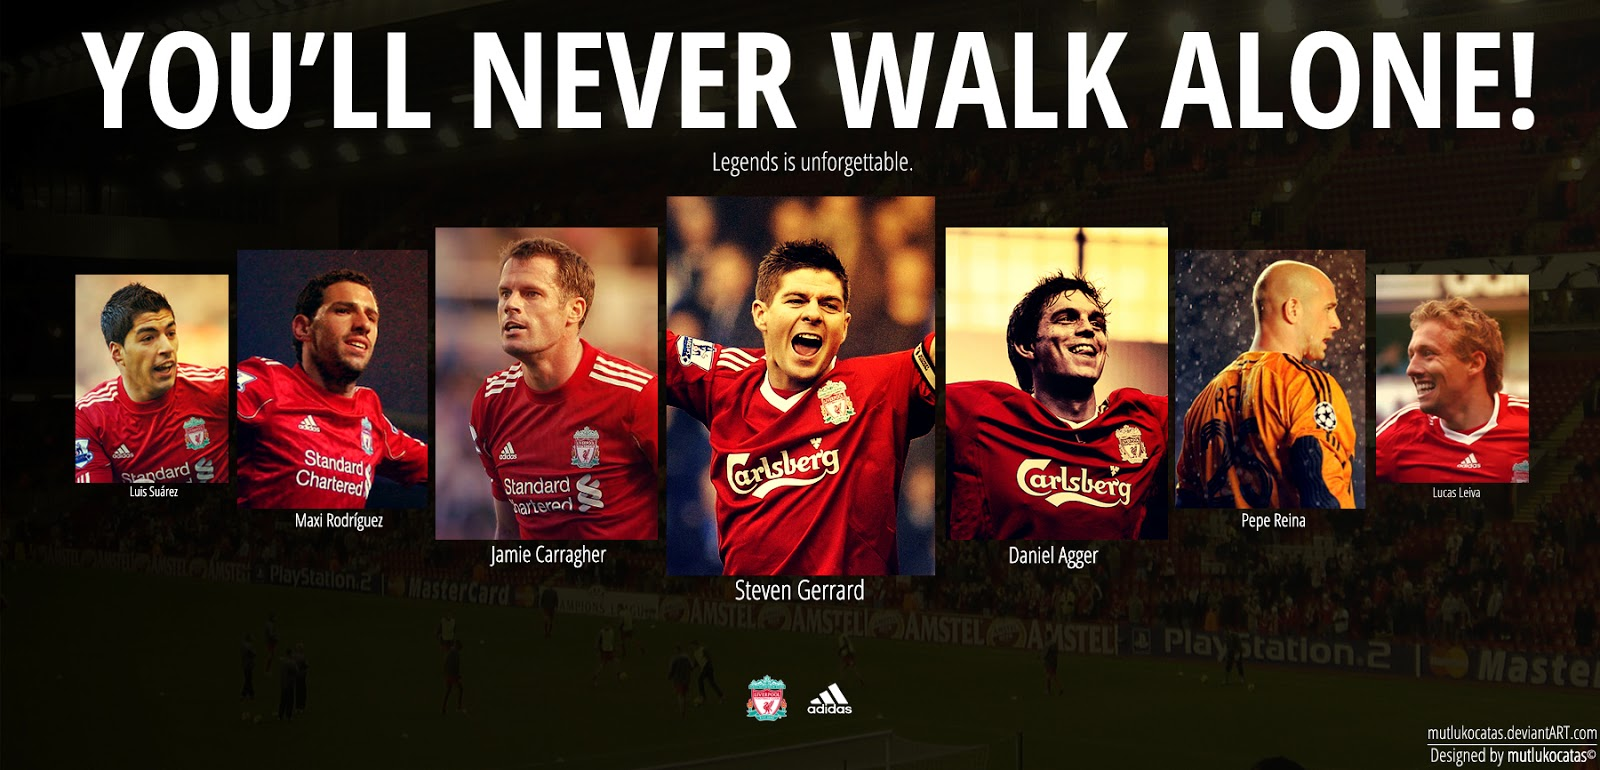 sejarah youll never walk alone Page Go 1600x770